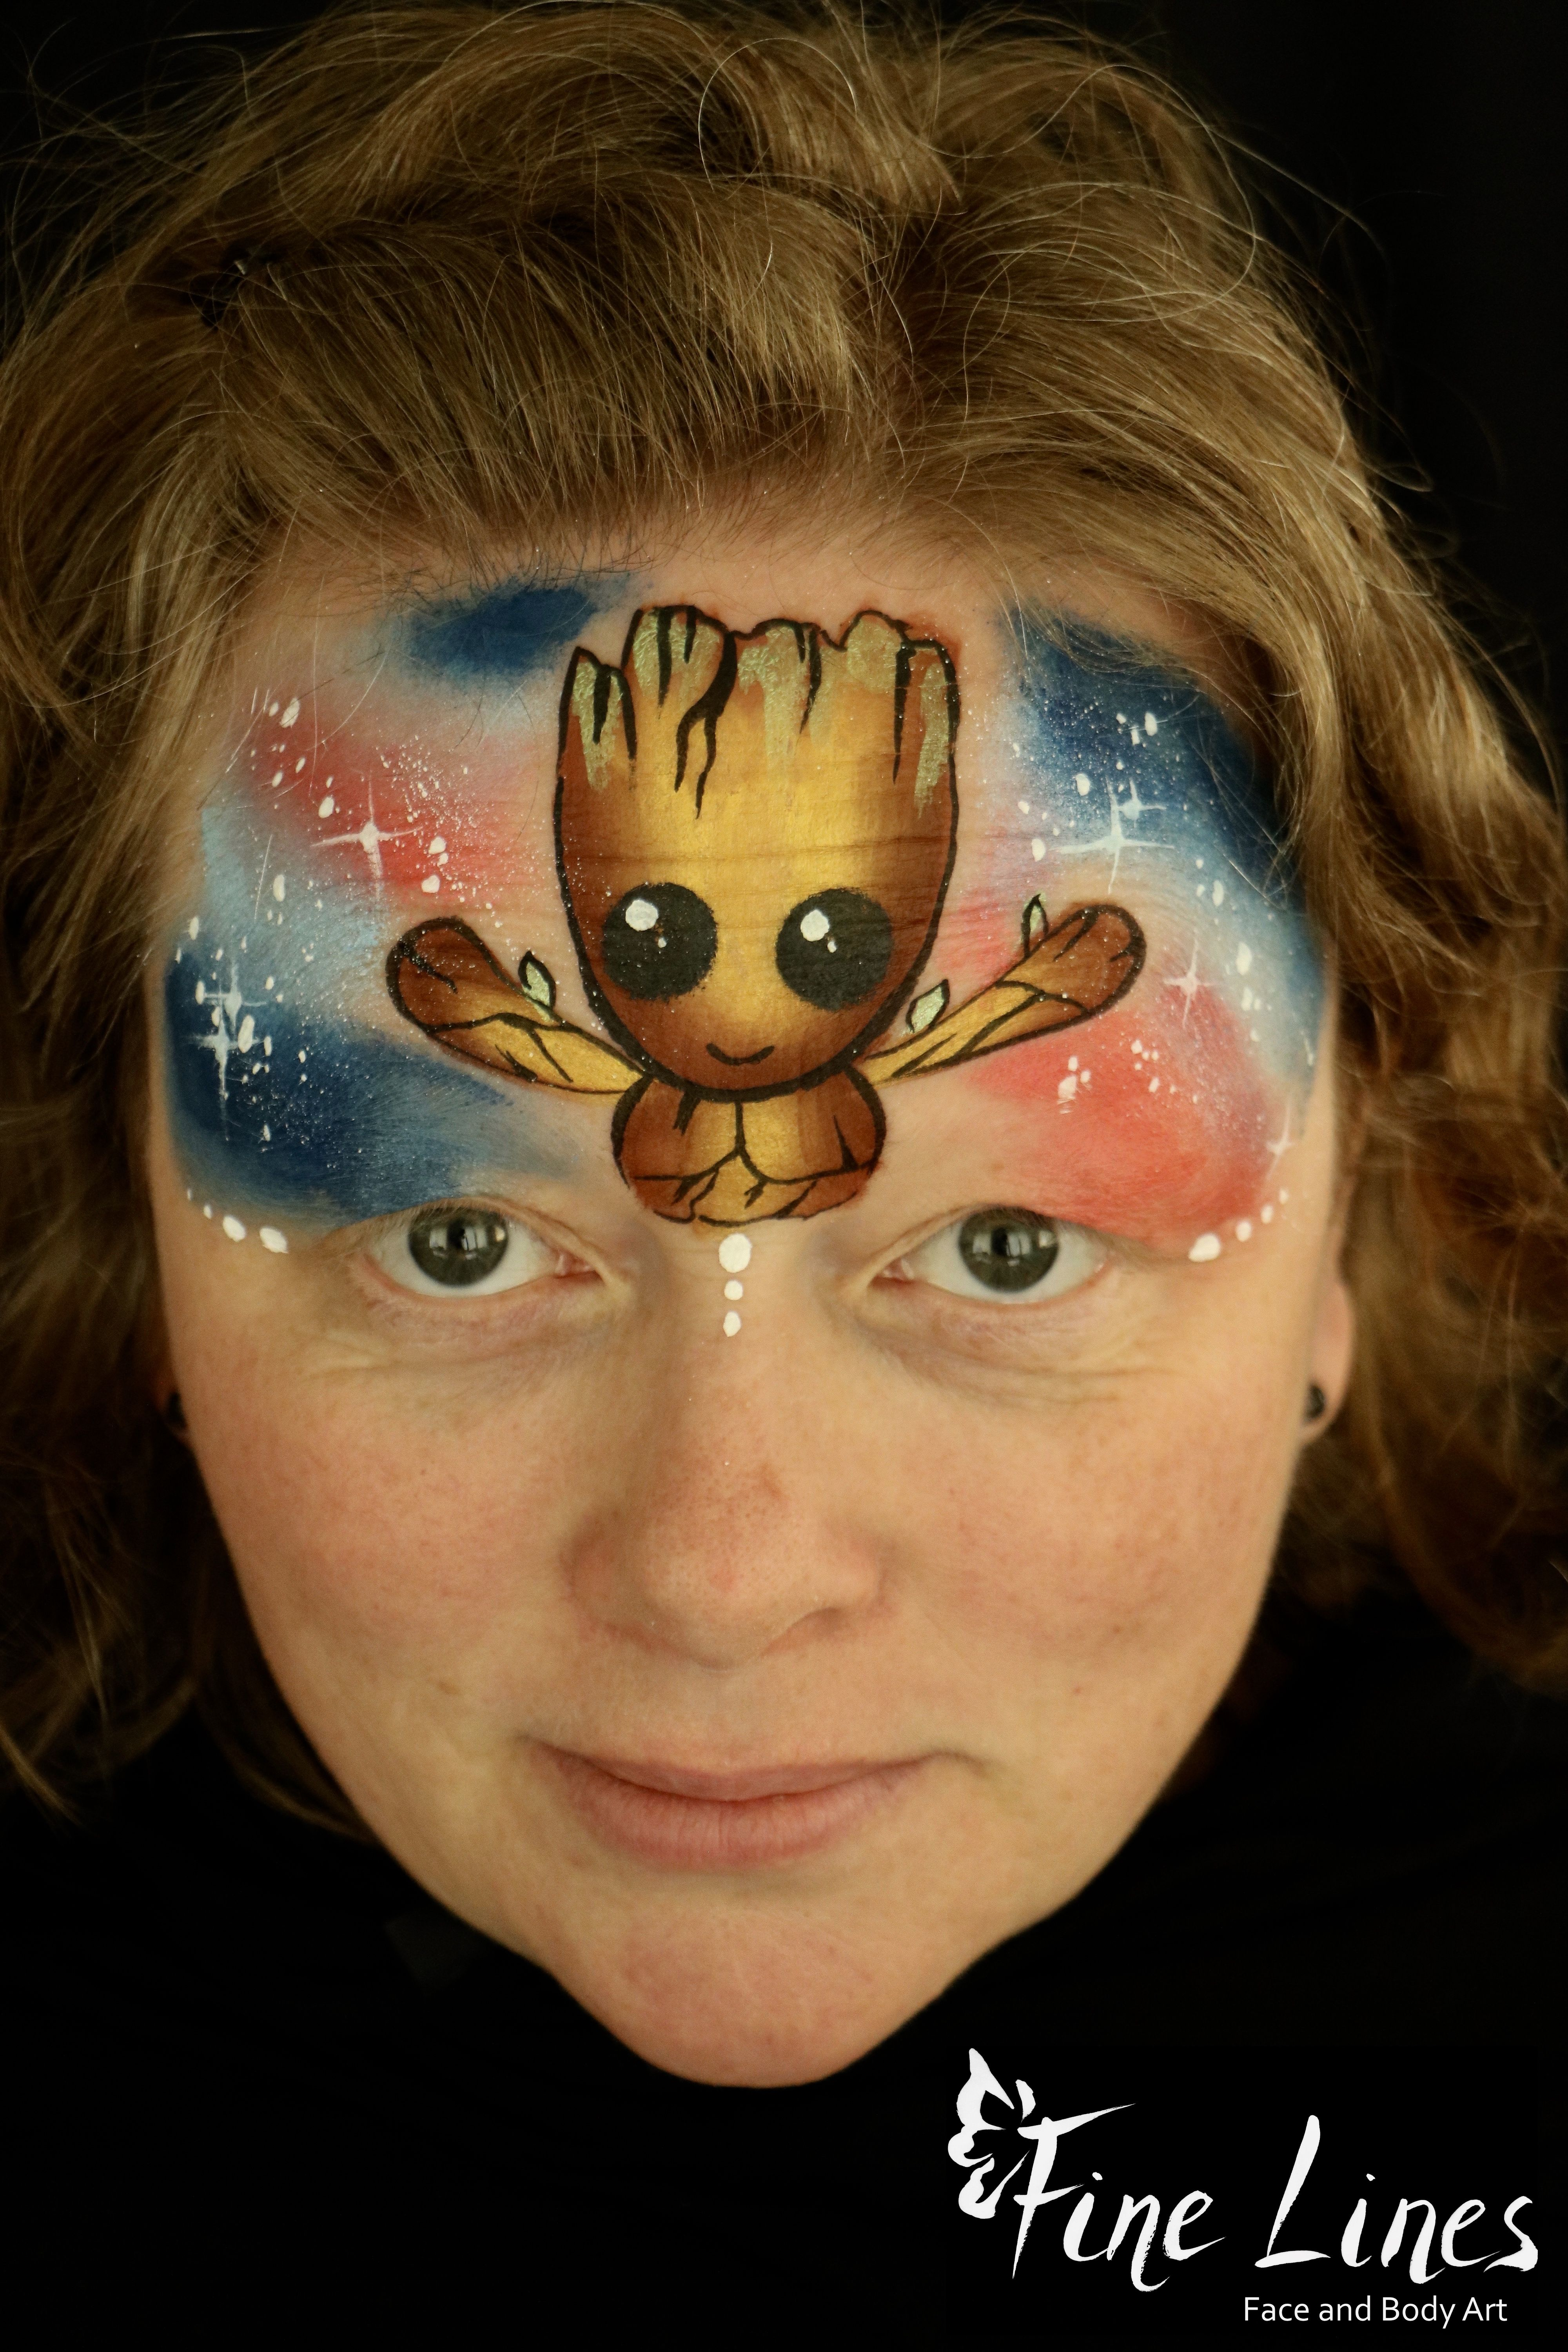 Avengers Face Painting Baby Groot Avengers Kinderschminken Baby Groot Fine Lines Face And Face Painting Designs Superhero Face Painting Face Painting For Boys